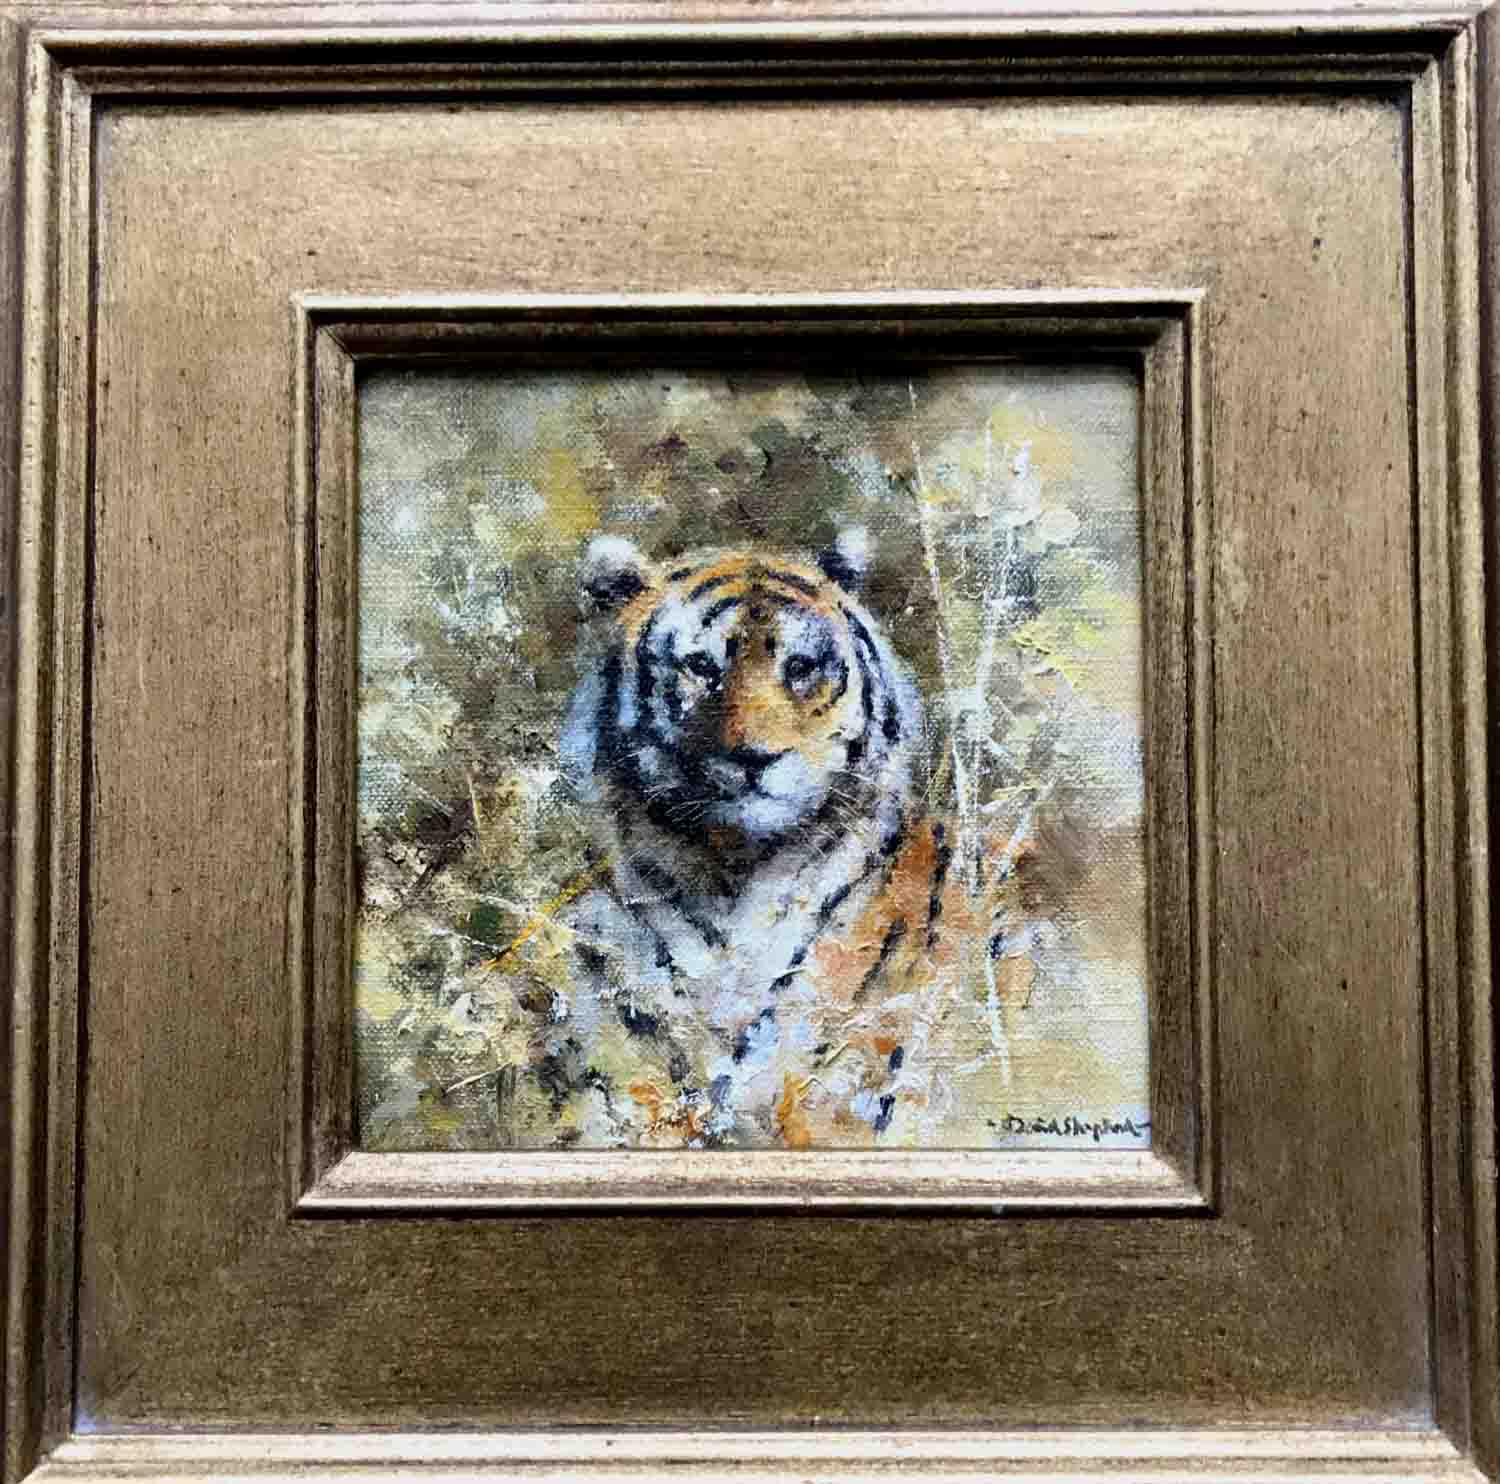 david shepherd original, tiger's head, painting